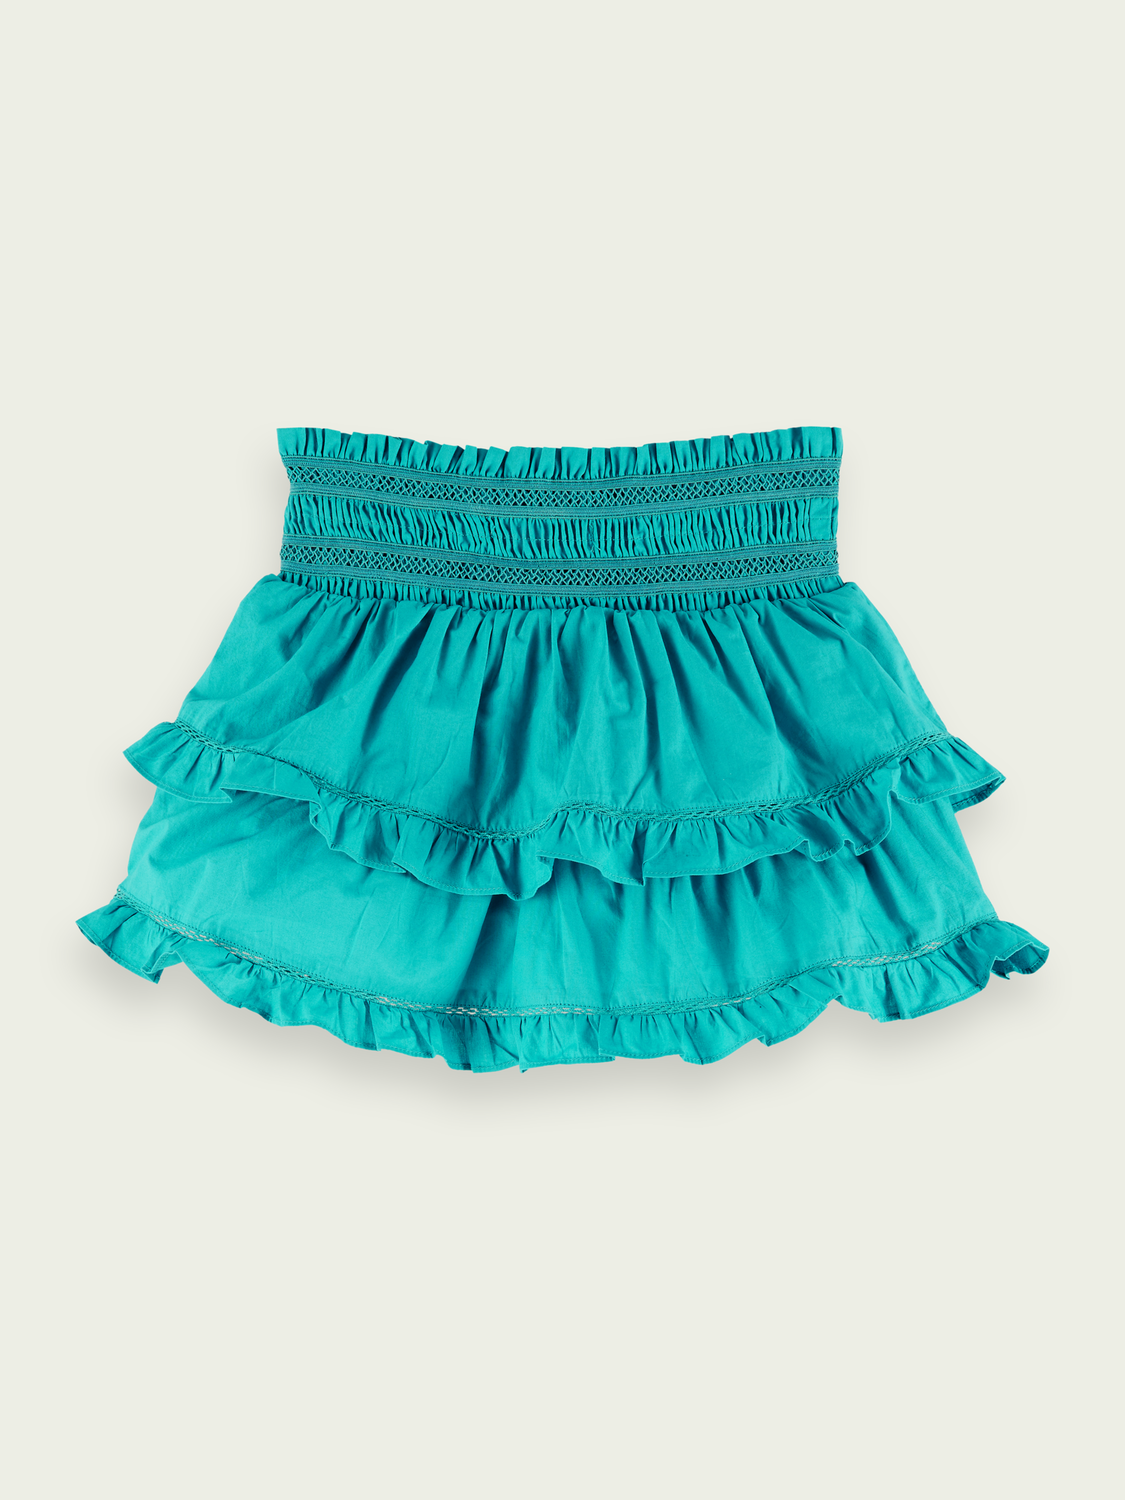 Kids Organic cotton ruffled short skirt - Deep Sea